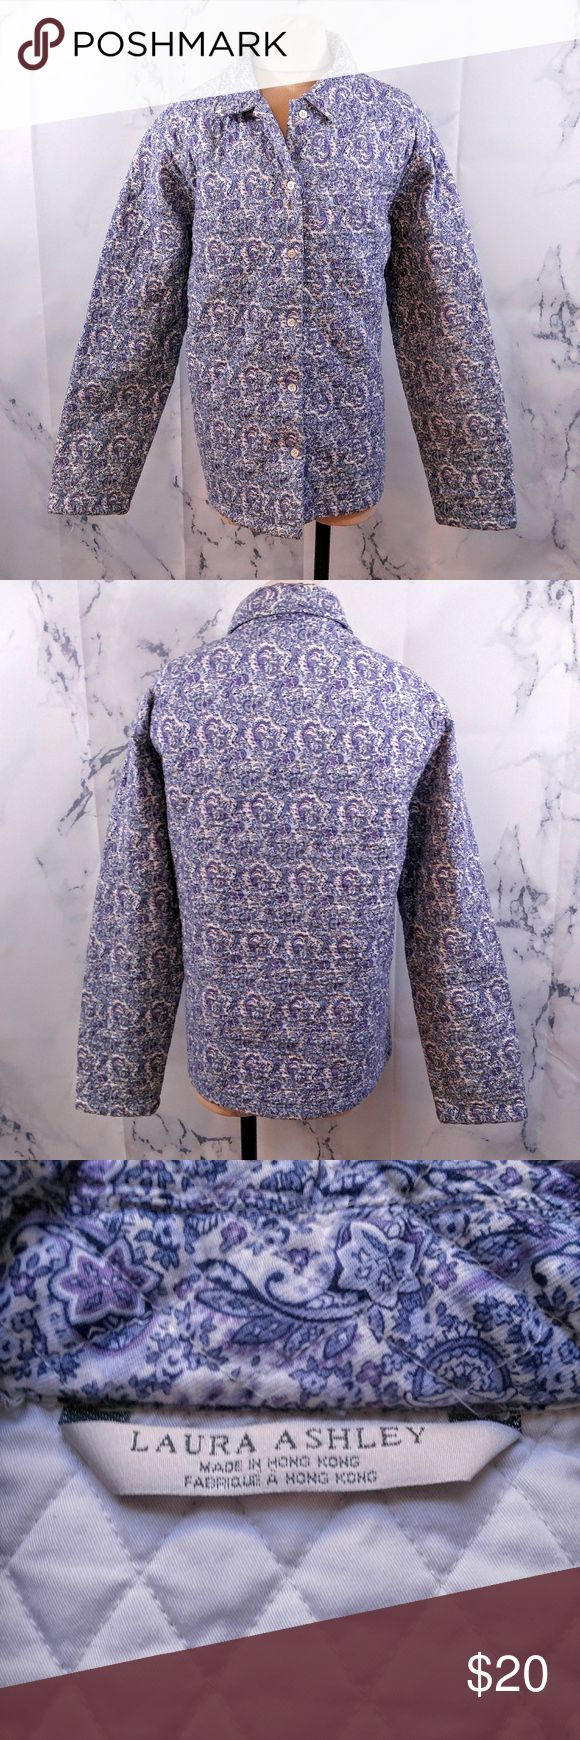 """Laura Ashley Blue and Purple Floral Quilted Jacket Laura Ashley Blue and Purple Floral Quilted 100% Cotton Jacket Materials: 100% Cotton Size: XL Measurements Laid Flat Bust: 24"""" Length: 27"""" Feel free to ask any questions, I can get back to you within 24 hours. Laura Ashley Jackets & Coats"""